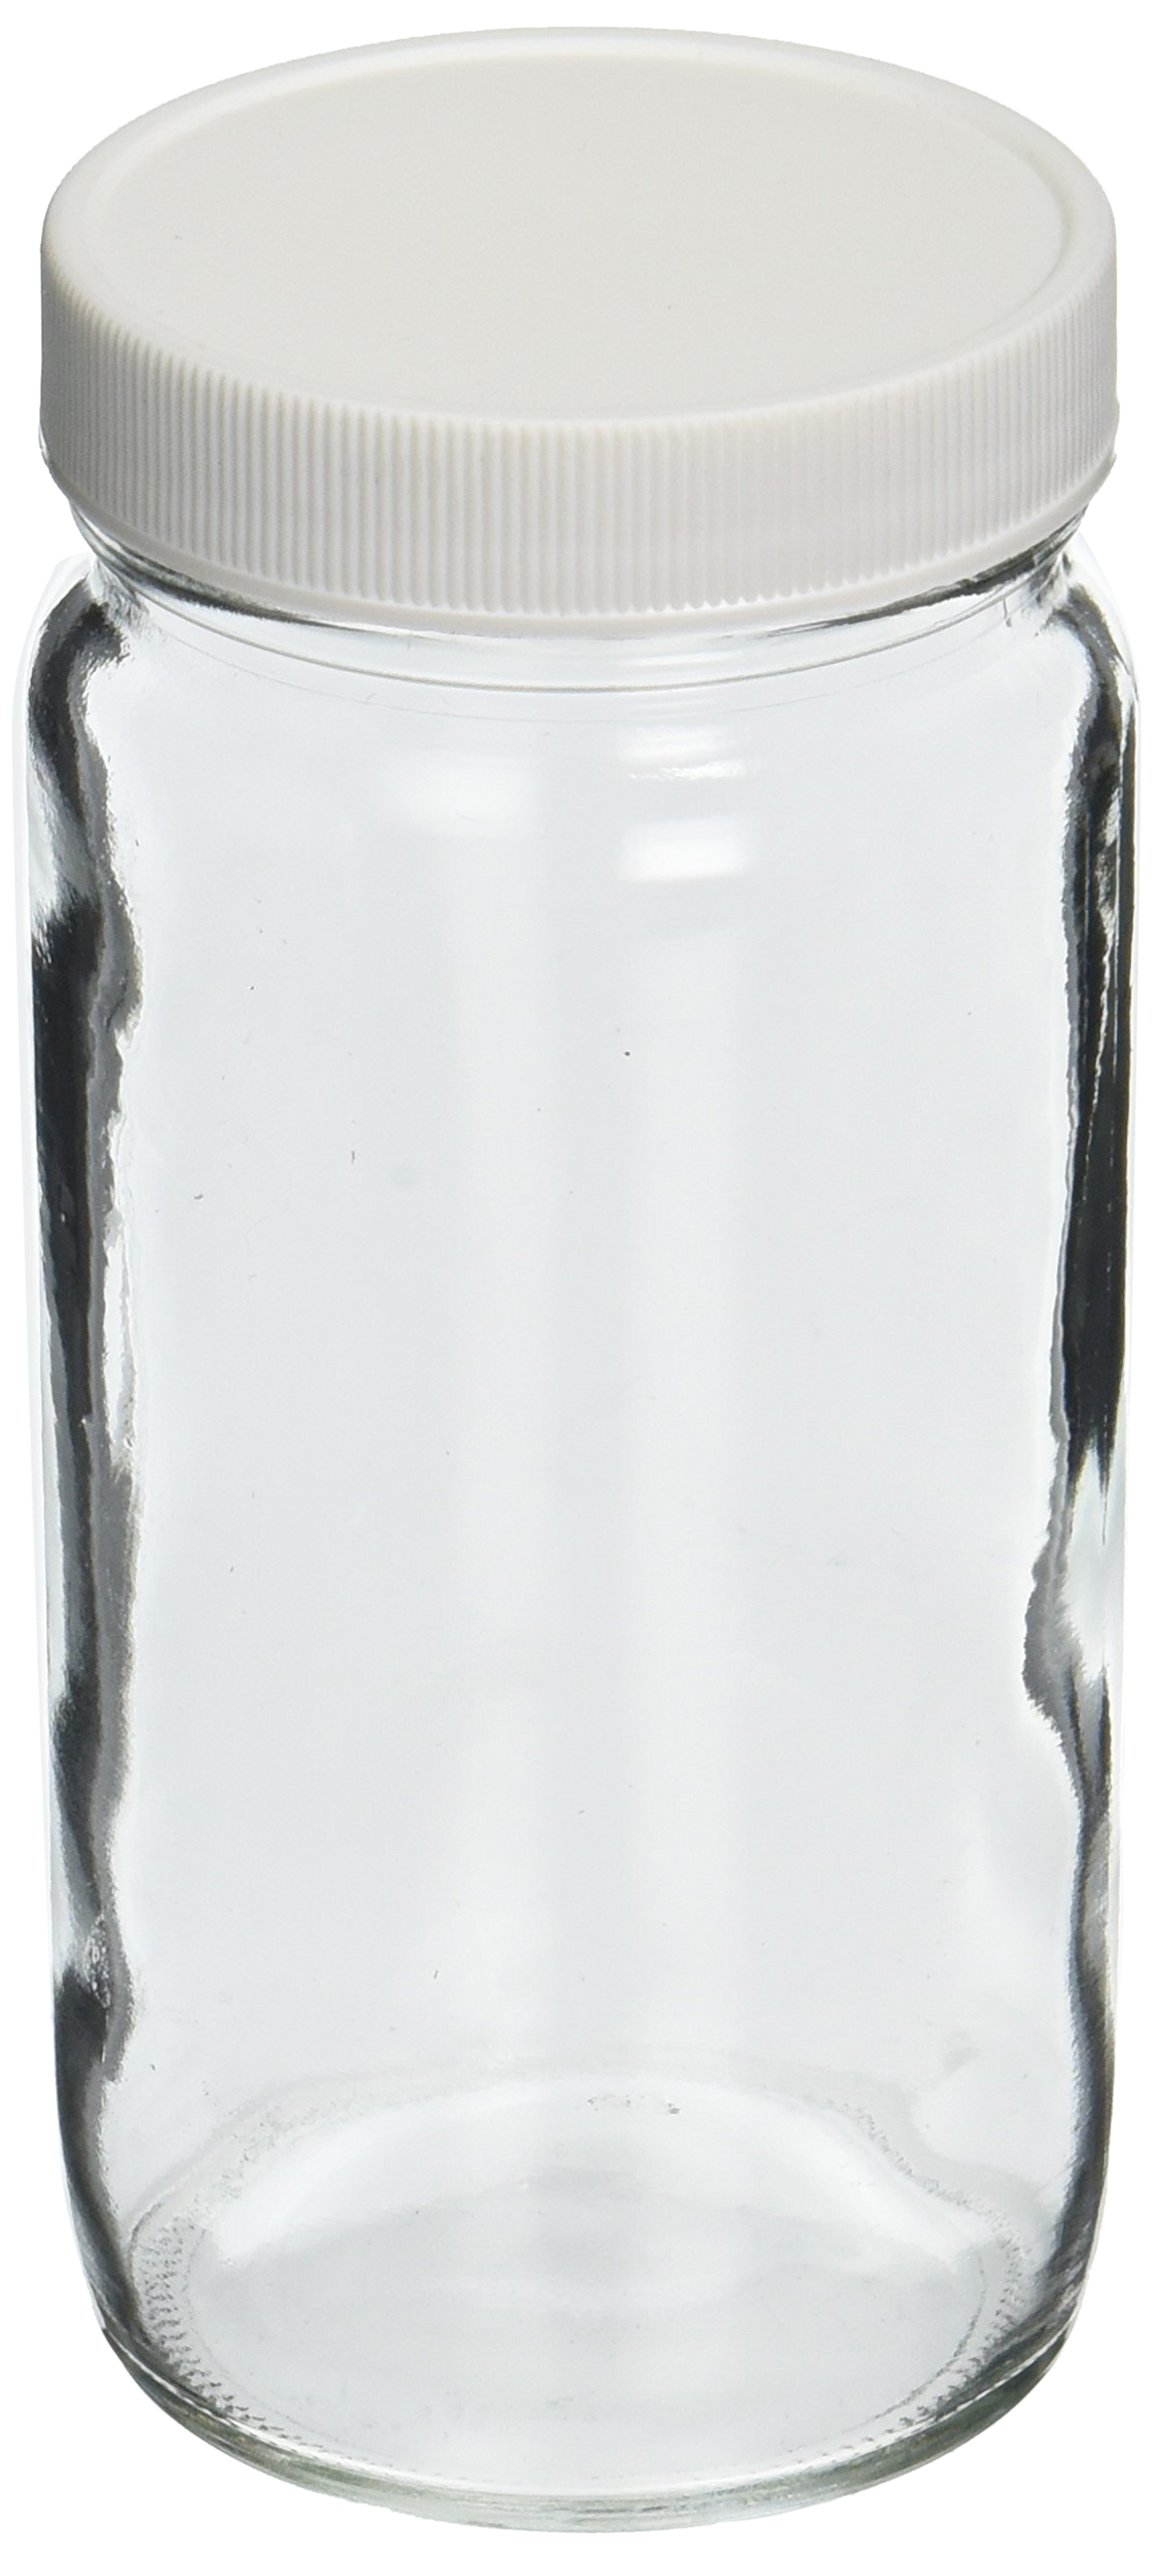 JG Finneran D0098-8 Clear Borosilicate Glass Tall Straight Sided Standard Wide Mouth Jar with White Polypropylene Closure, F217 Lined, 58-400mm Cap Size, 8oz Capacity (Pack of 12)